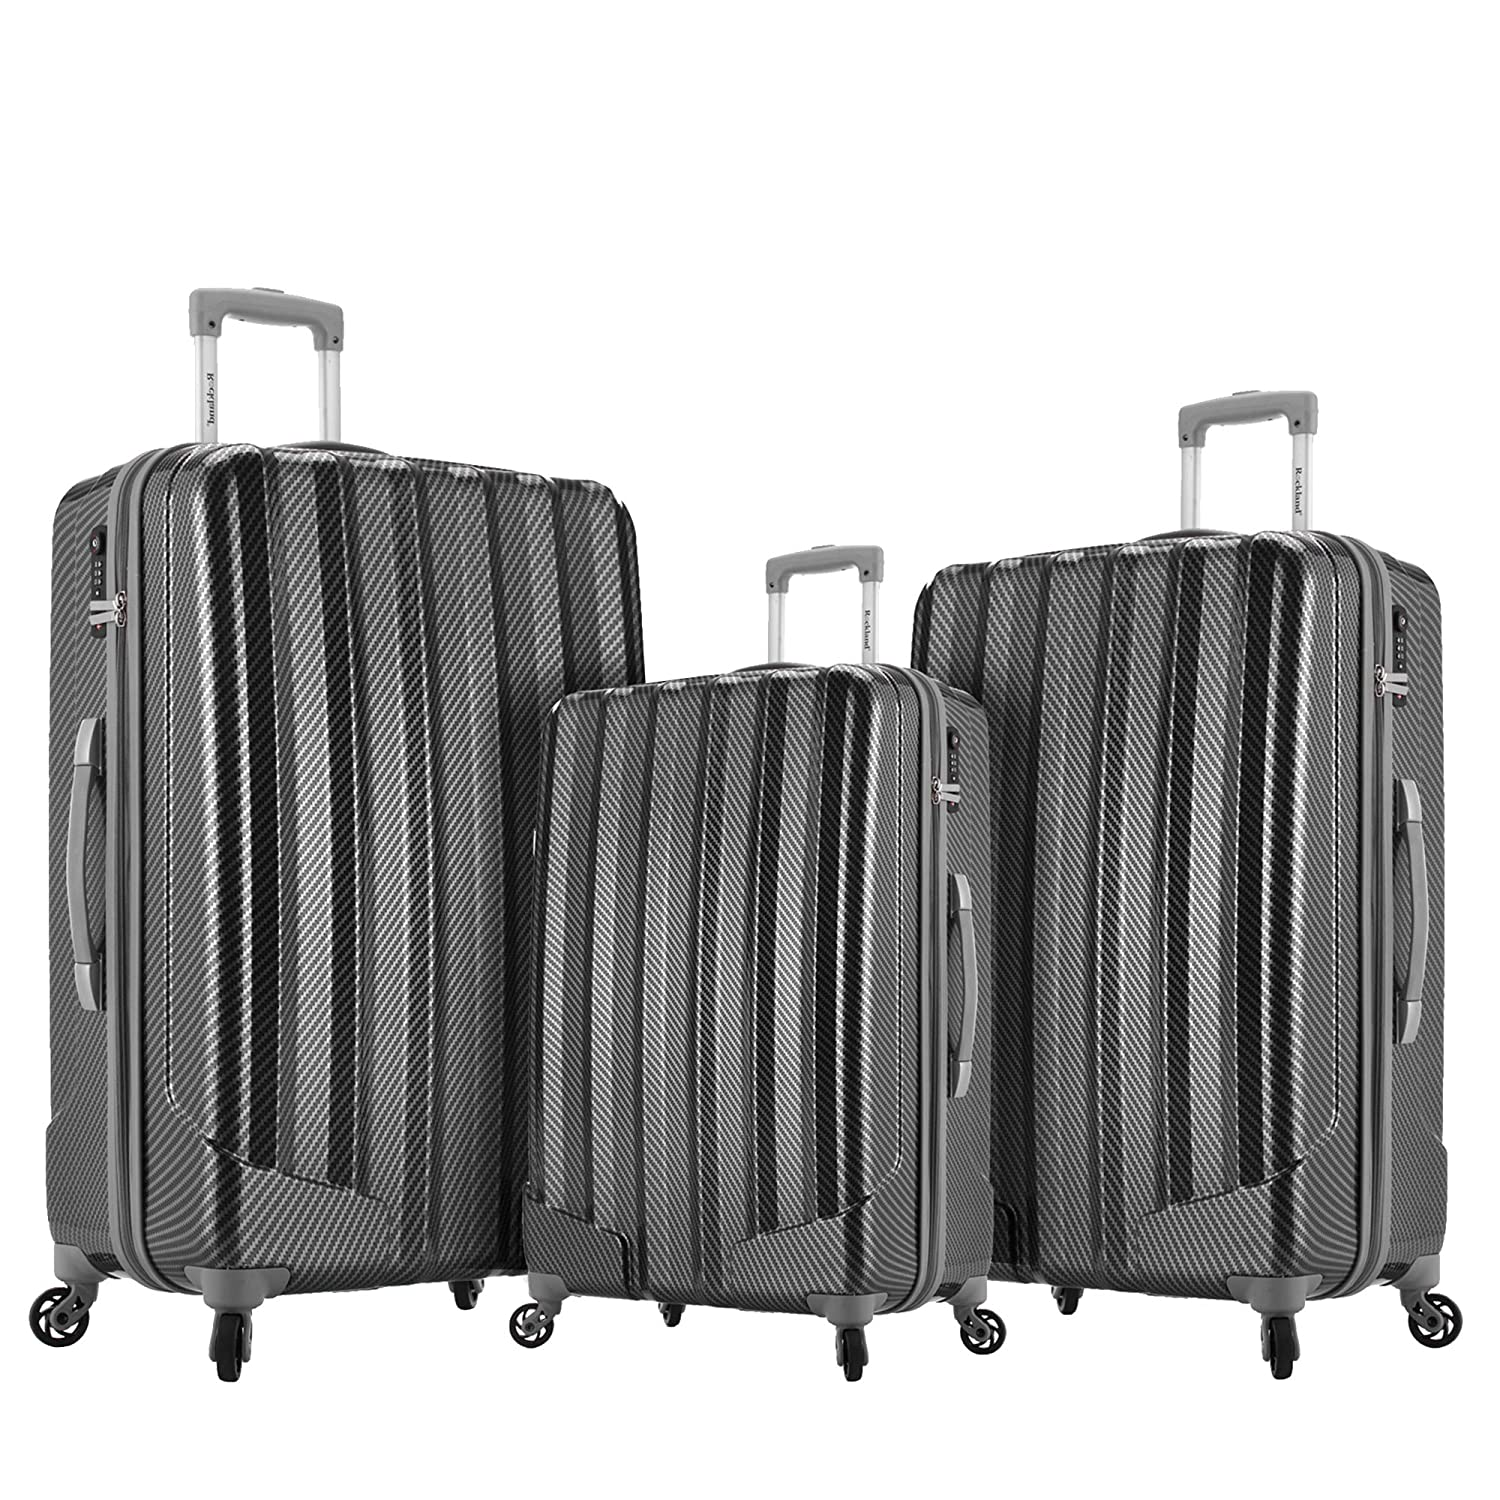 Amazon.com | Rockland Barcelona 3 Polycarbonate/abs Set with 6 Pc. Travel Set & Luggage Cover, Black | Luggage Sets